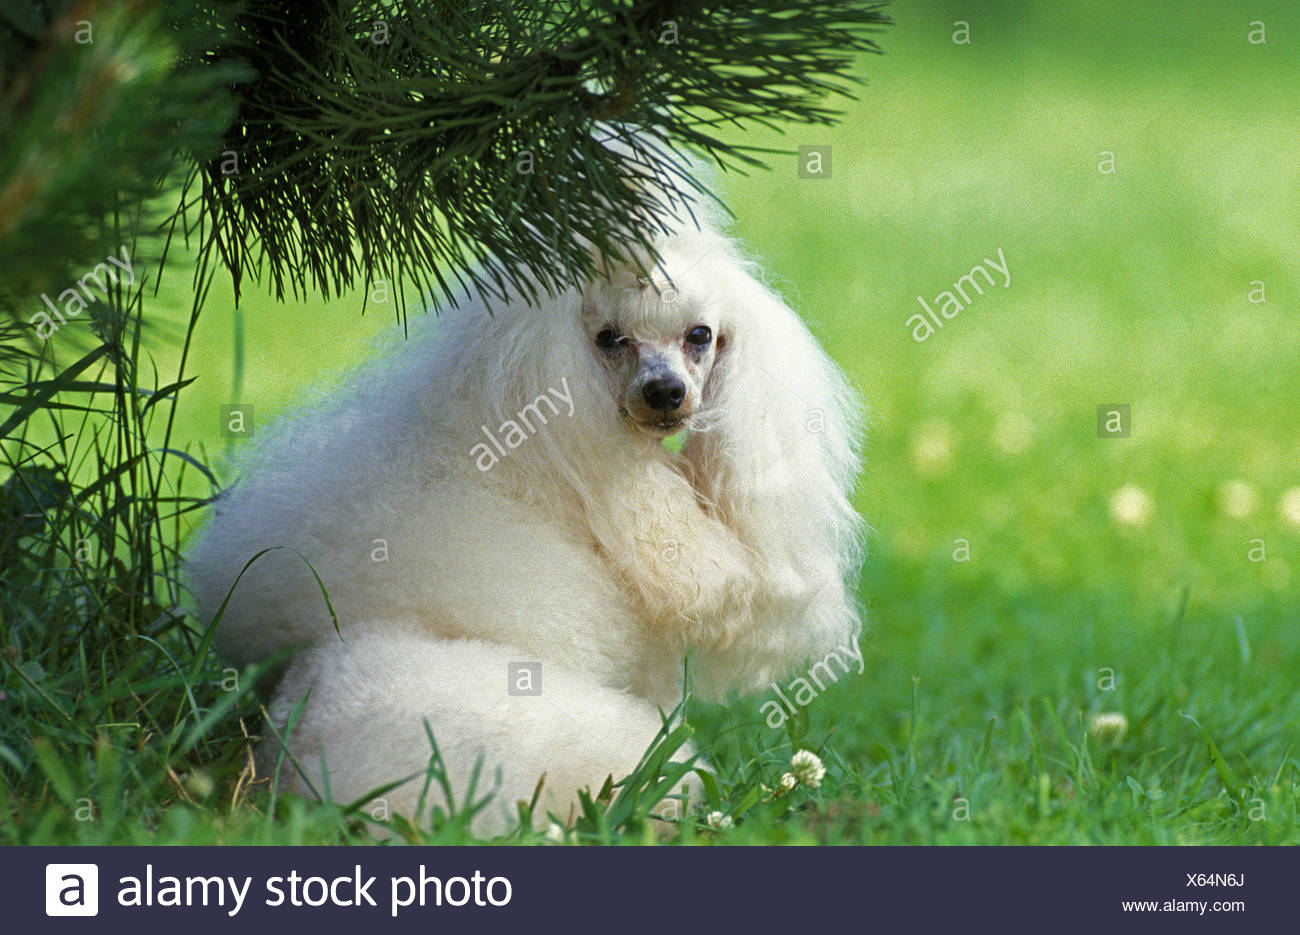 White Miniature Poodle  on Grass - Stock Image